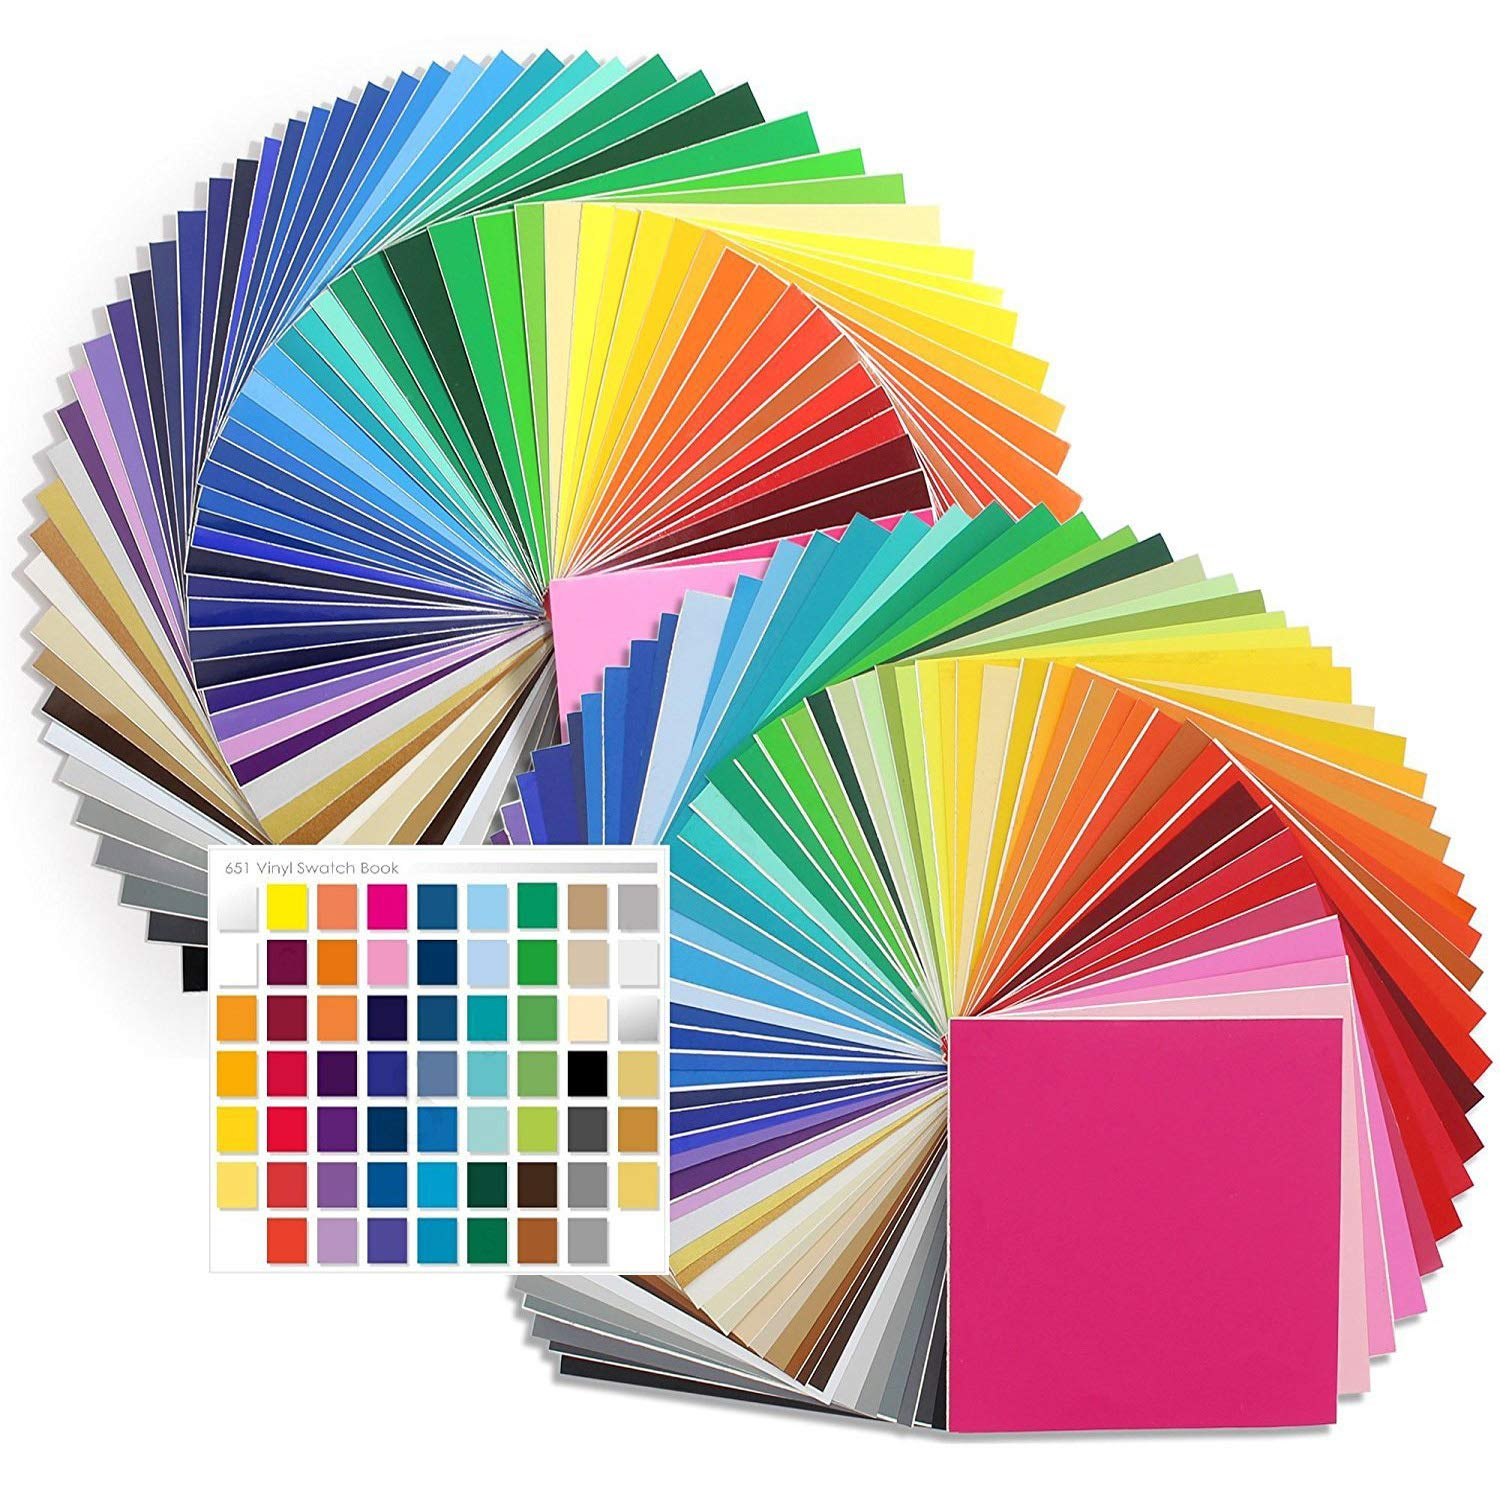 Oracal Vinyl Starter Kit - 129 Assorted Colors! 651 Glossy Vinyl and 631 Matte Vinyl with 651 Swatch Book